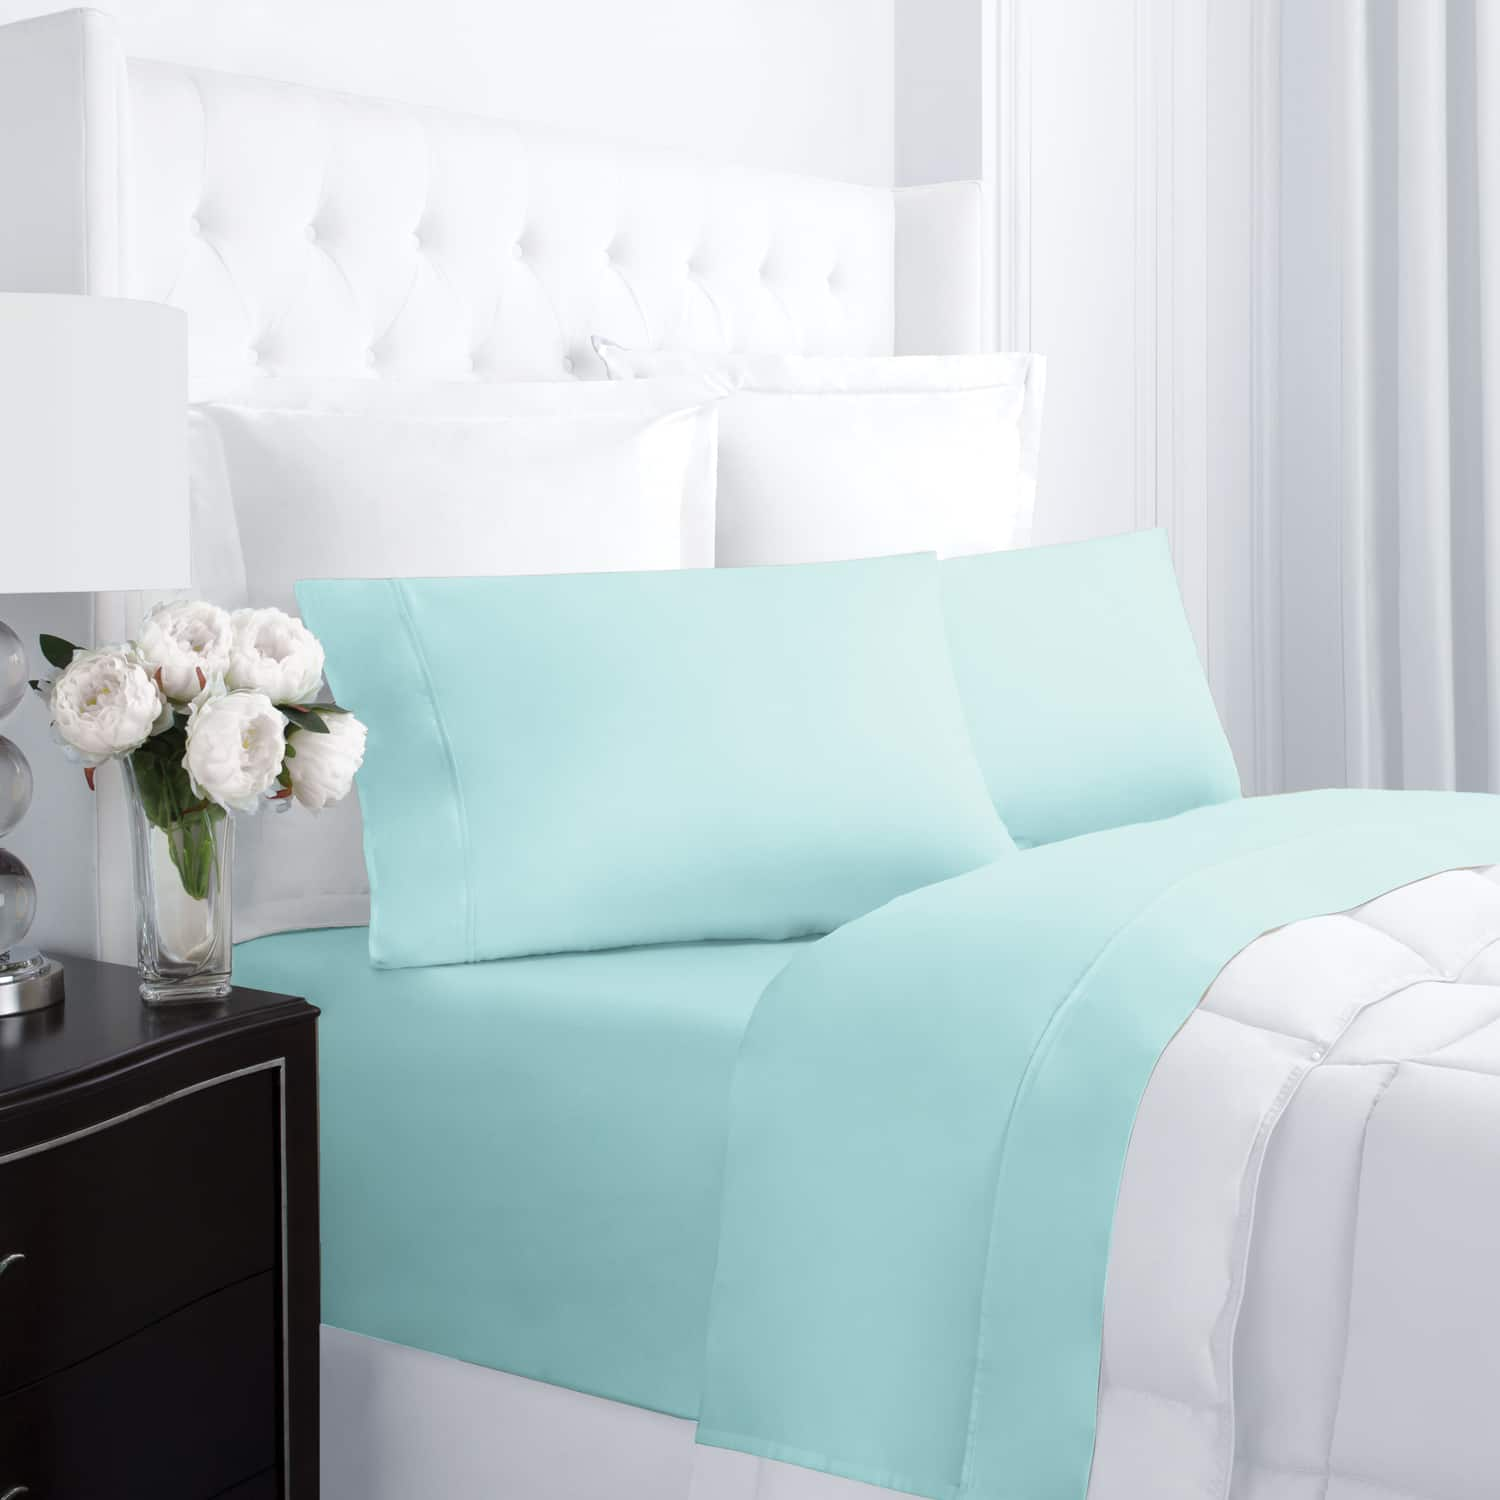 Linens & Hutch 300TC Cotton 4 Piece Sheet Set Starting at $31.34 + FS